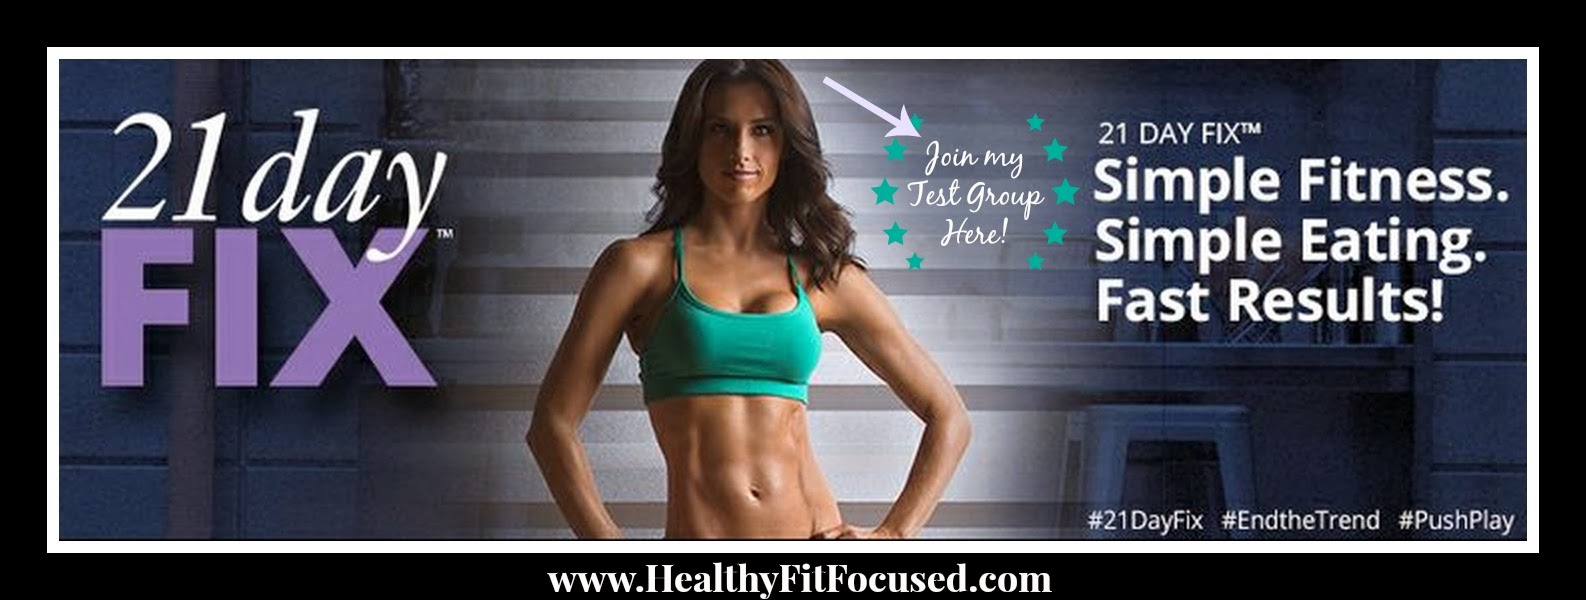 21 Day Fix Challenge Group, www.HealthyFitFocused.com